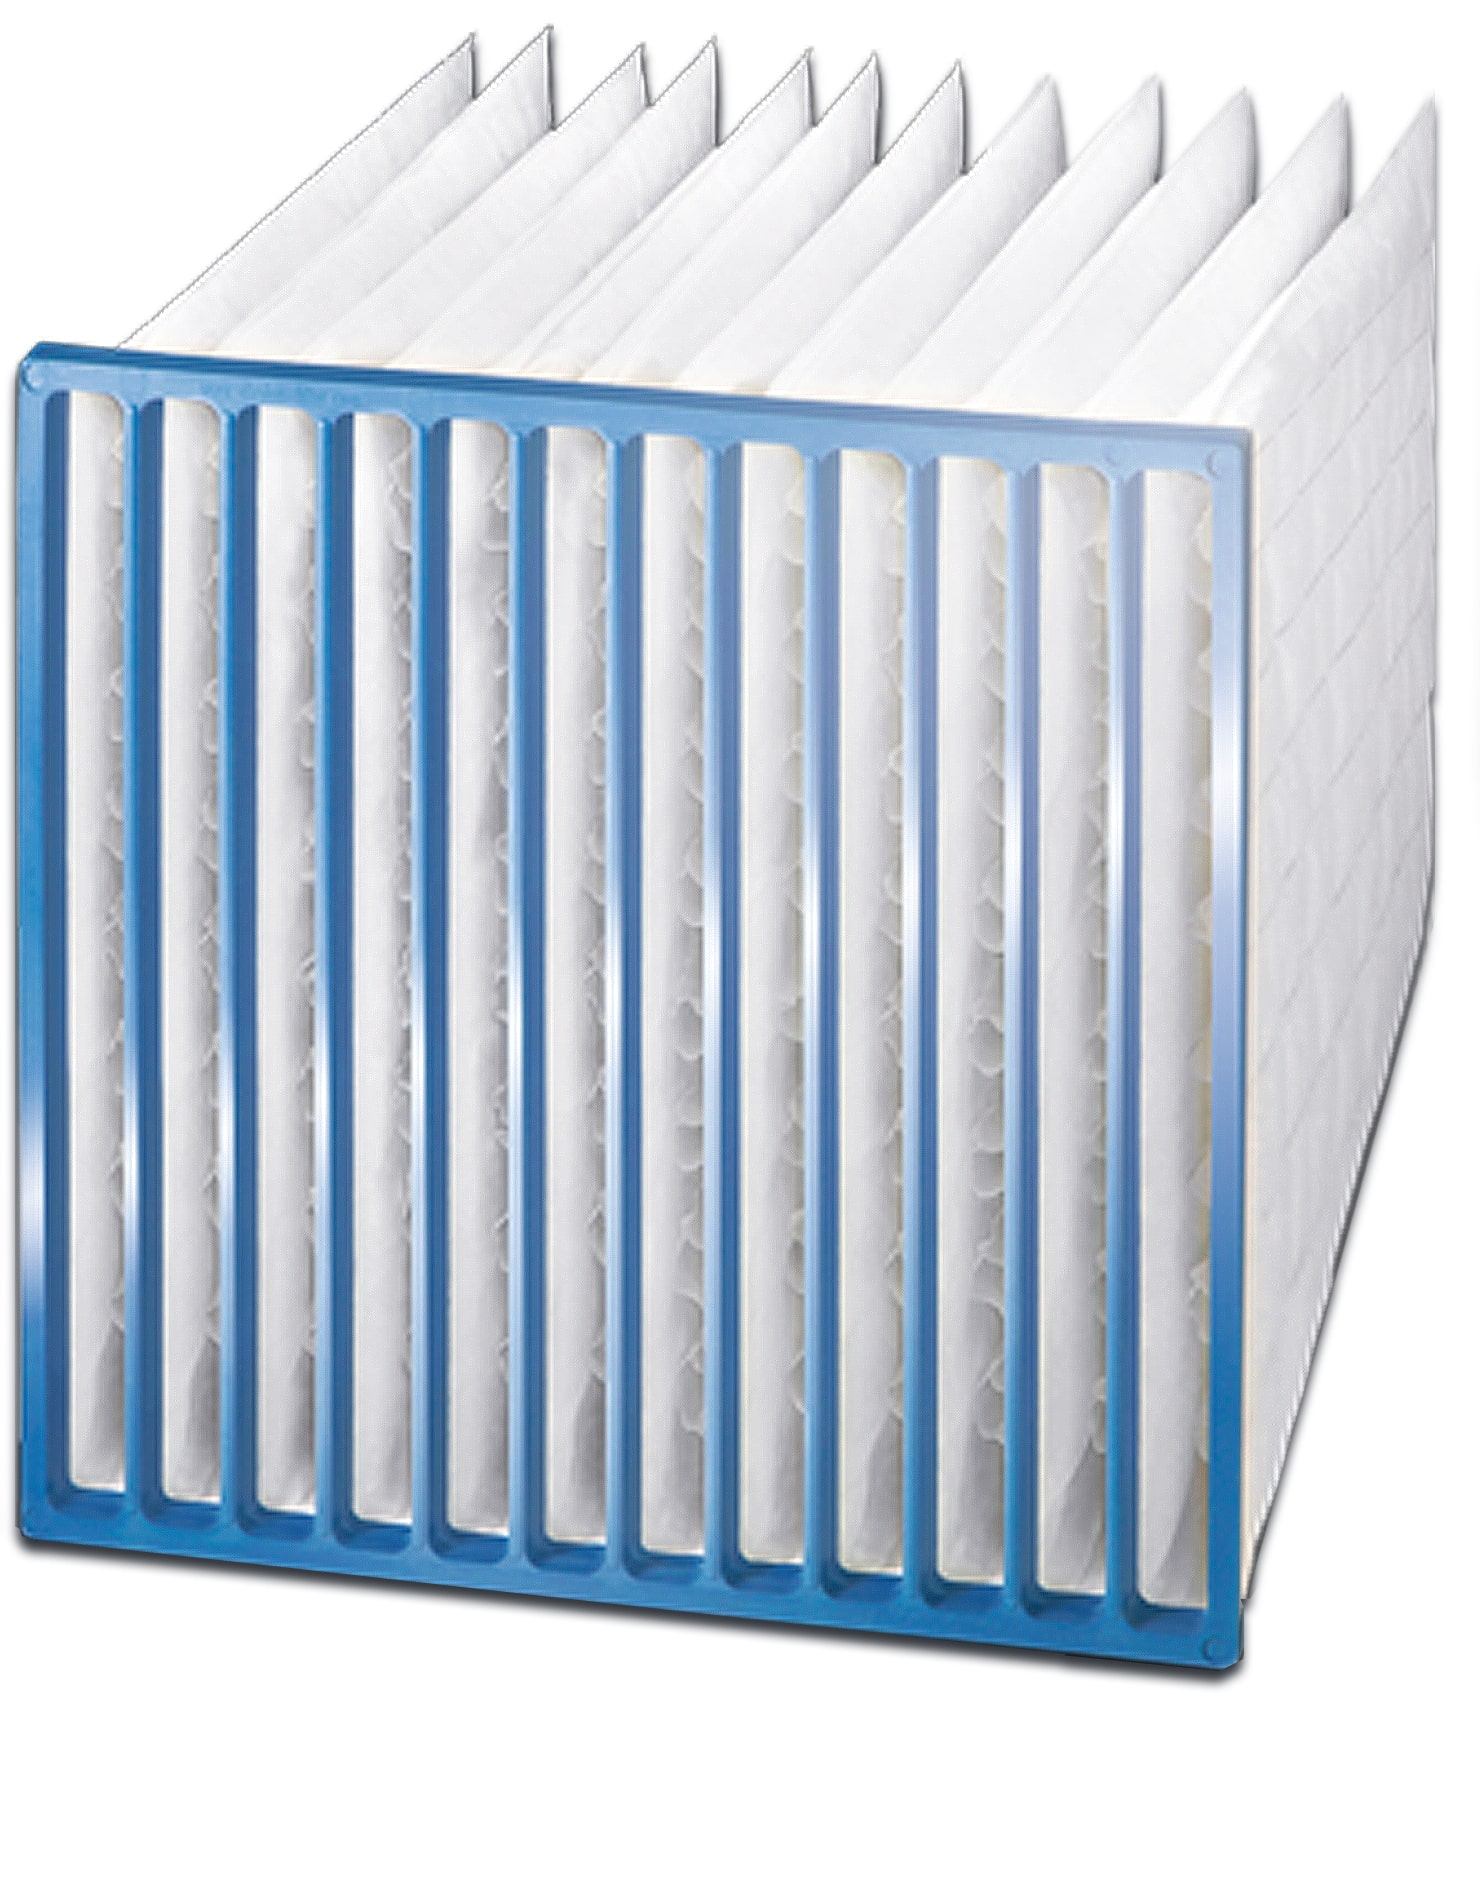 Viledon T90 Pocket Air Filter | Industrial Air Filtration Products